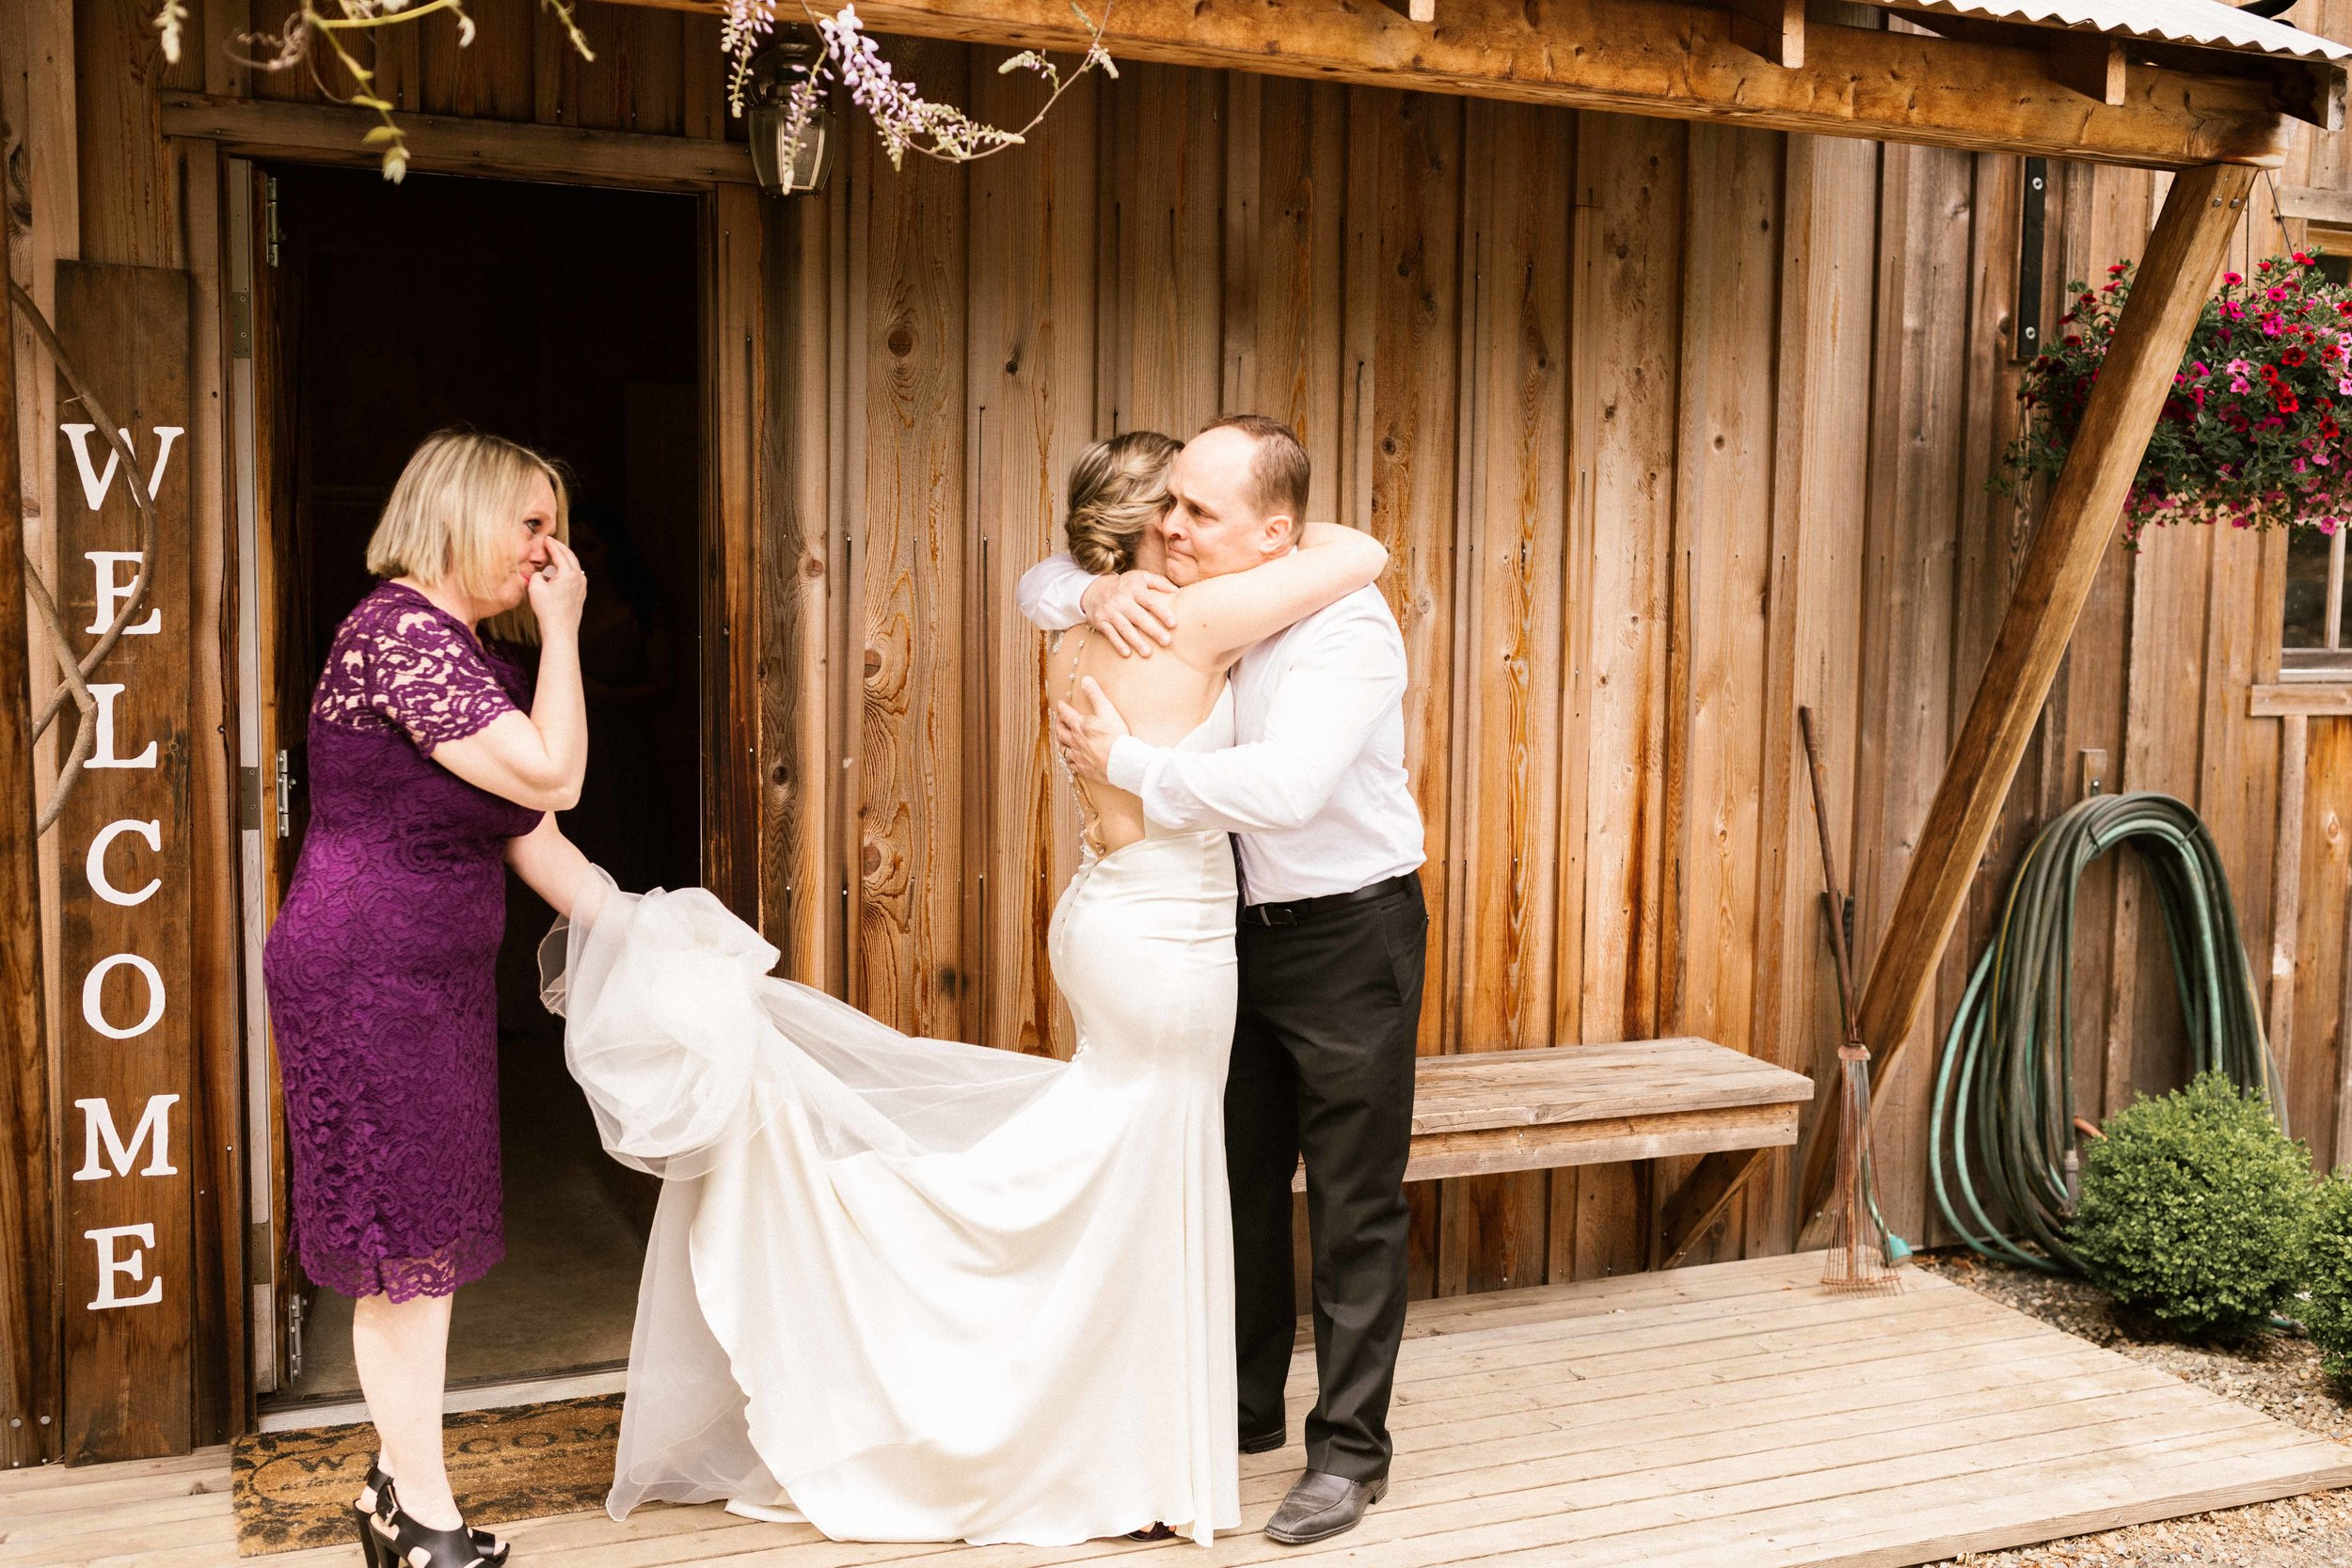 everson-barn-wedding-31.jpg